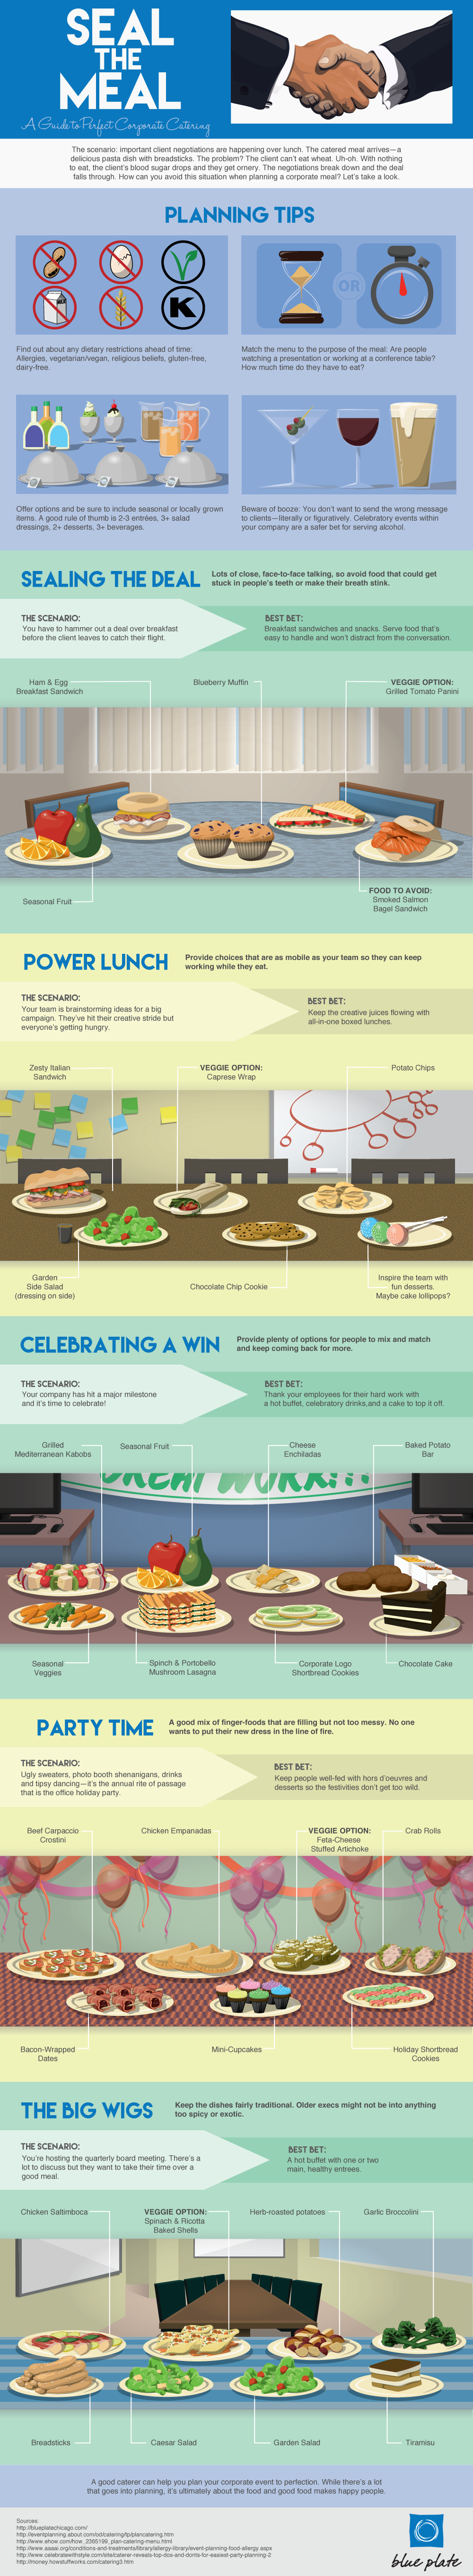 Catering the Perfect Corporate Meal #infographic